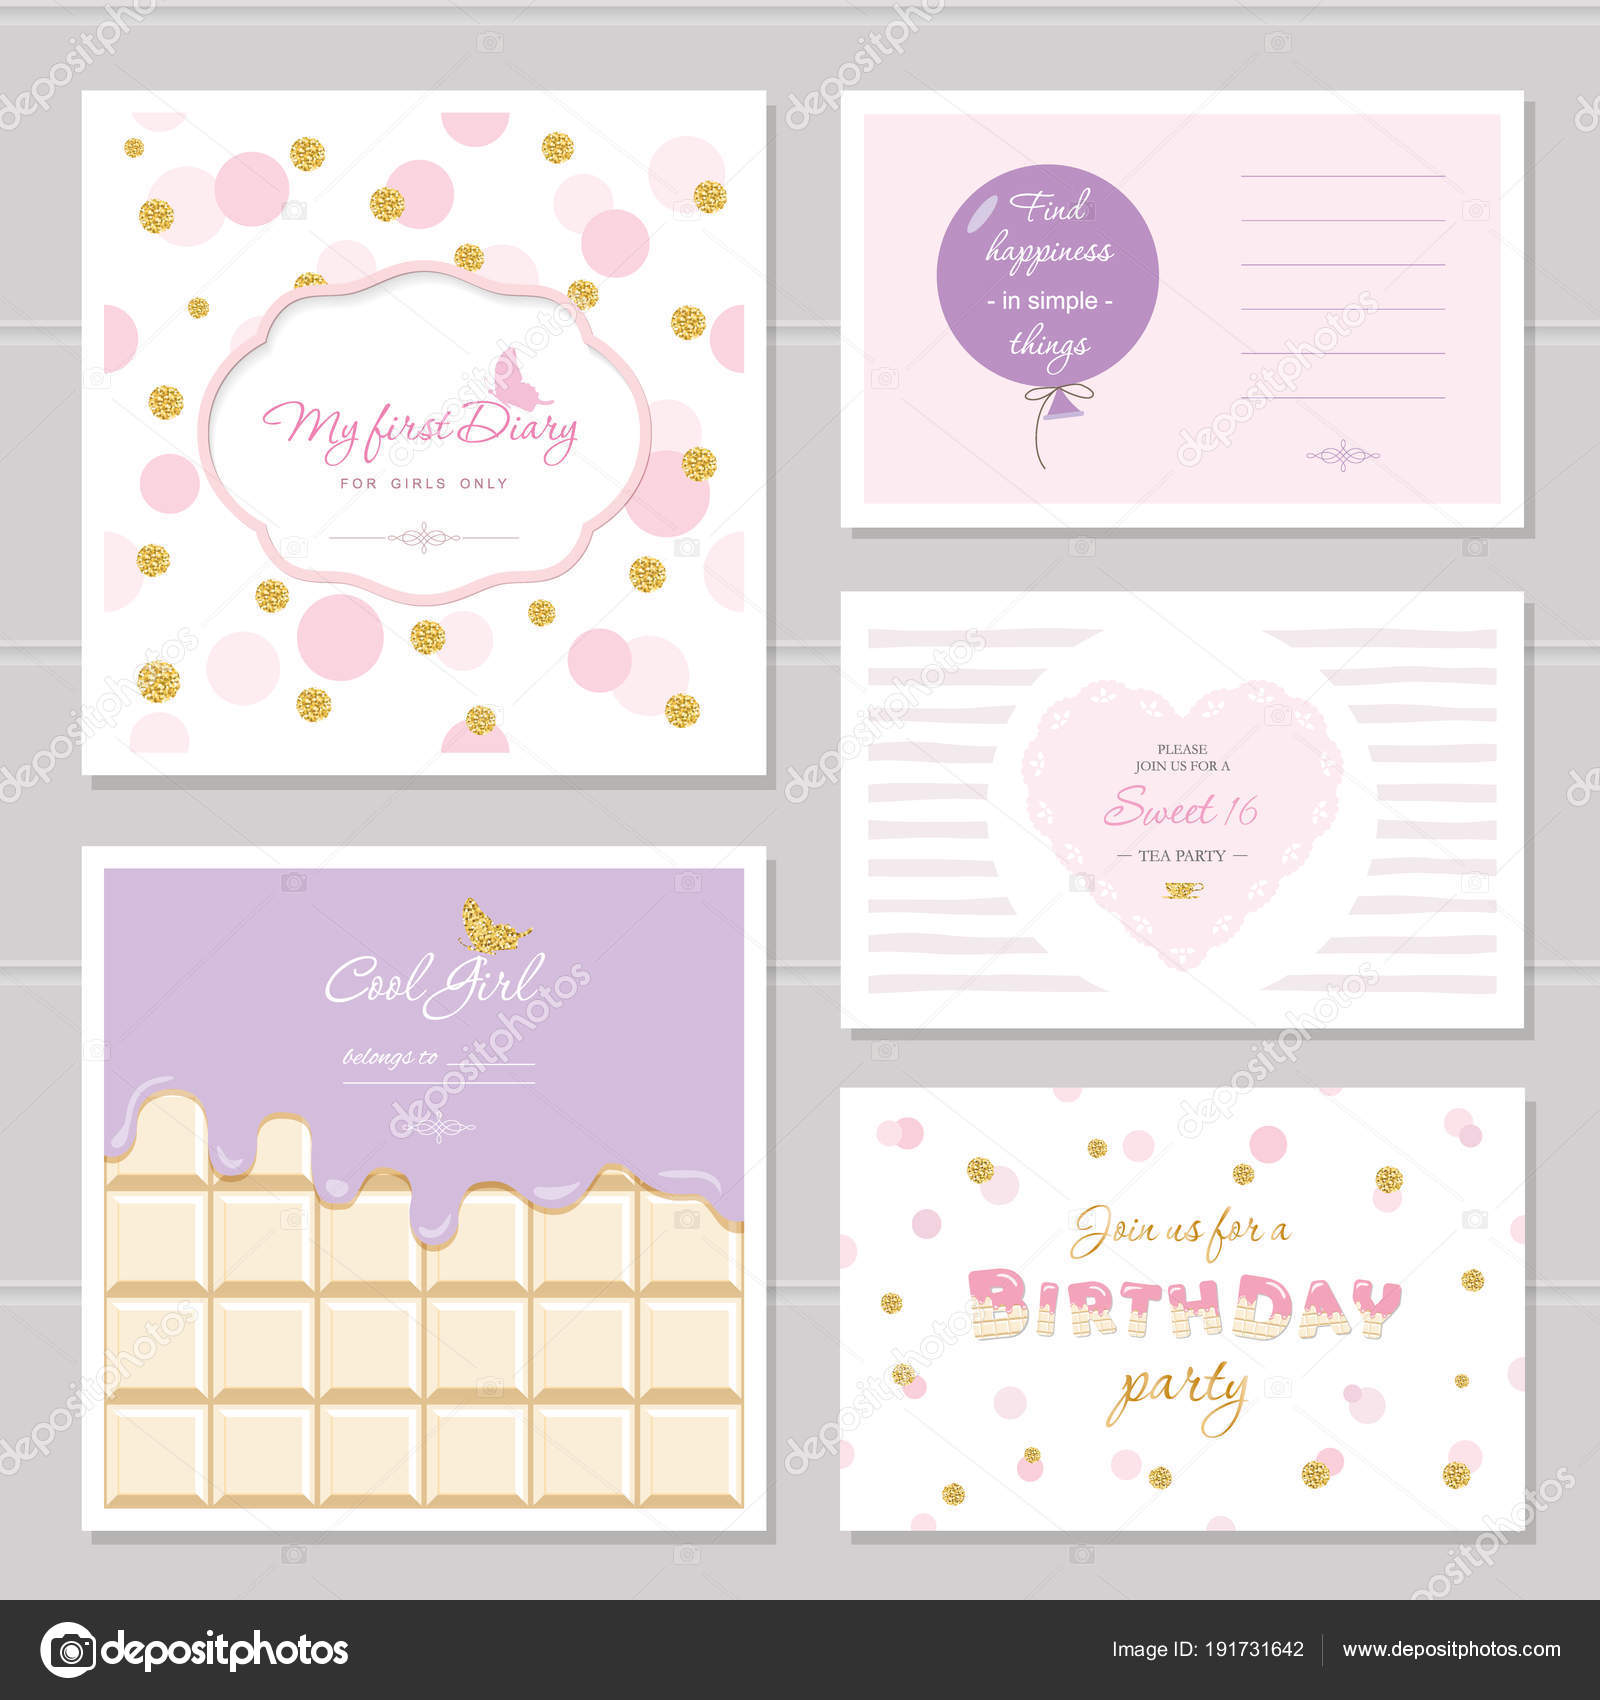 Cute Cards Design With Glitter For Teenage Girls Inspirational